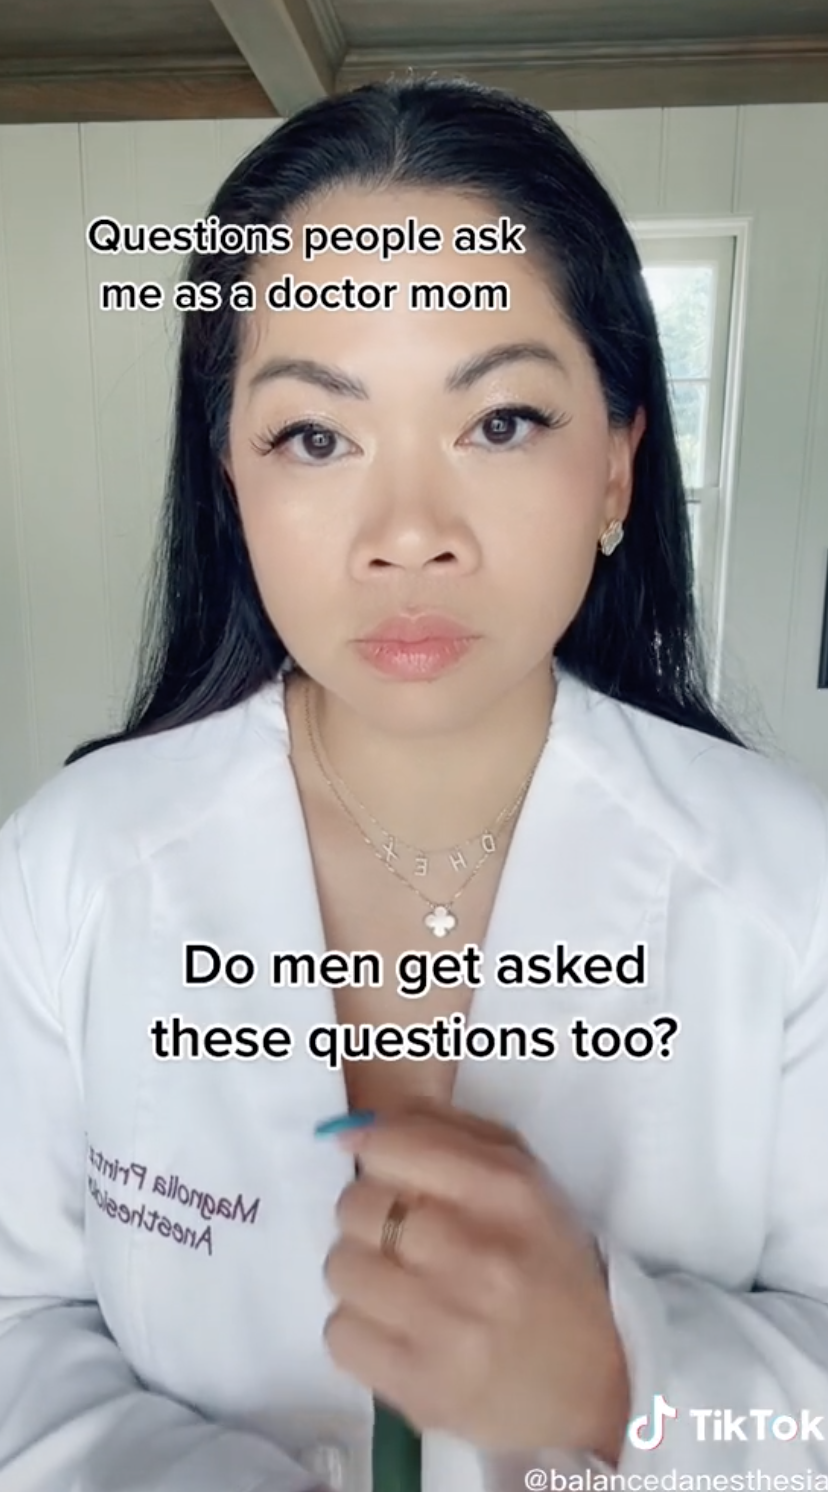 Do men get asked these questions too?